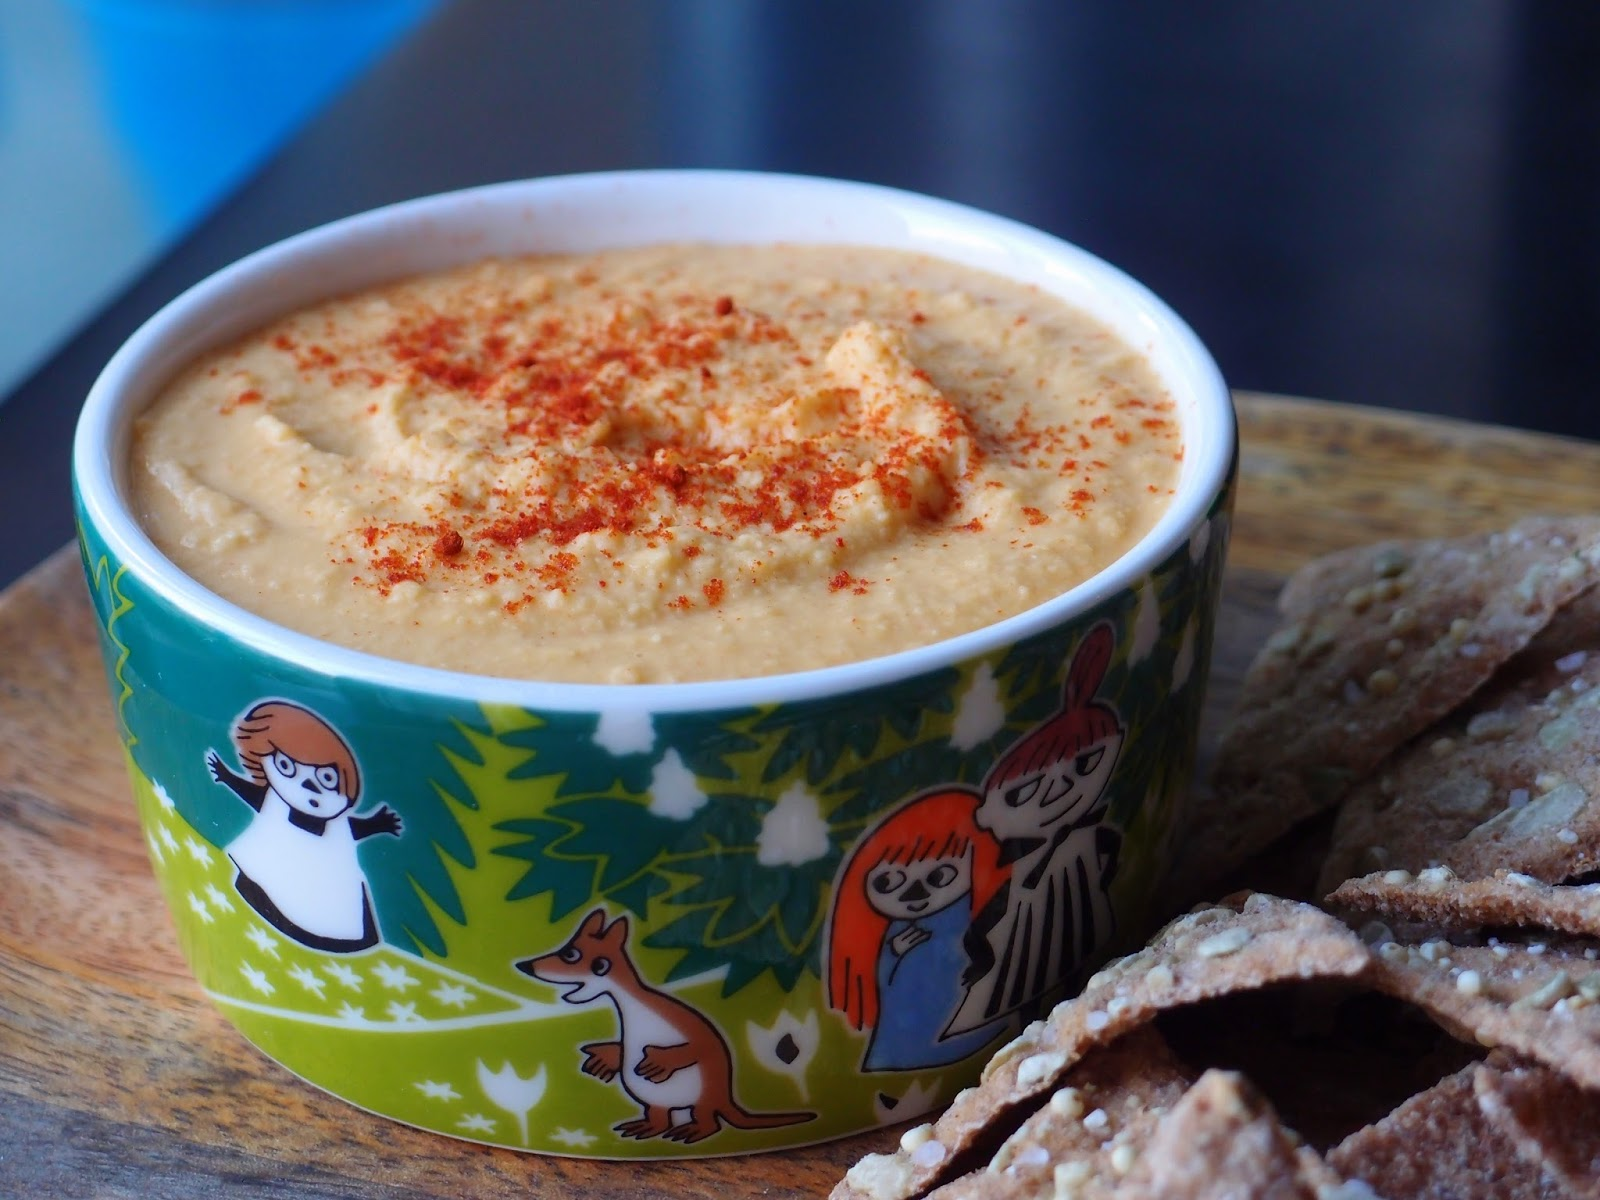 The VegHog: Red lentil hummus